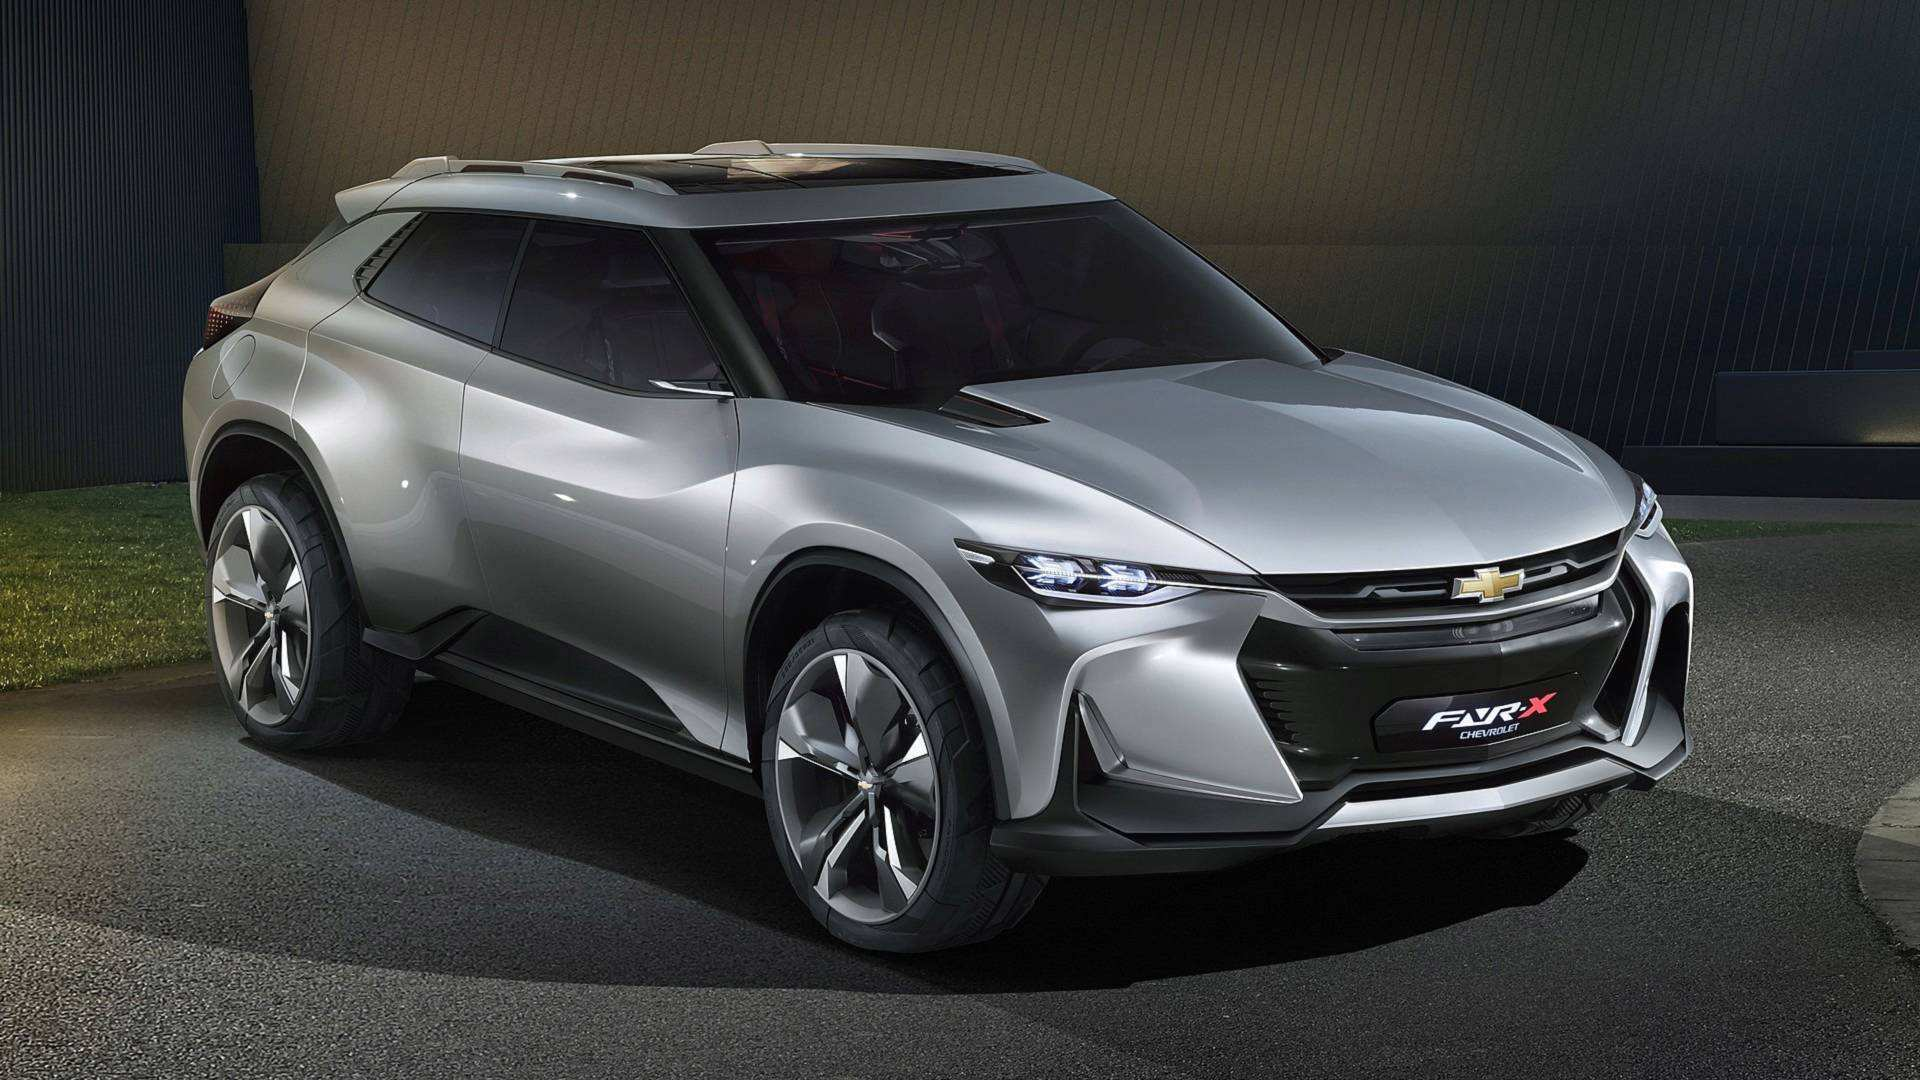 69 All New 2020 Toyota Suv Redesign And Concept